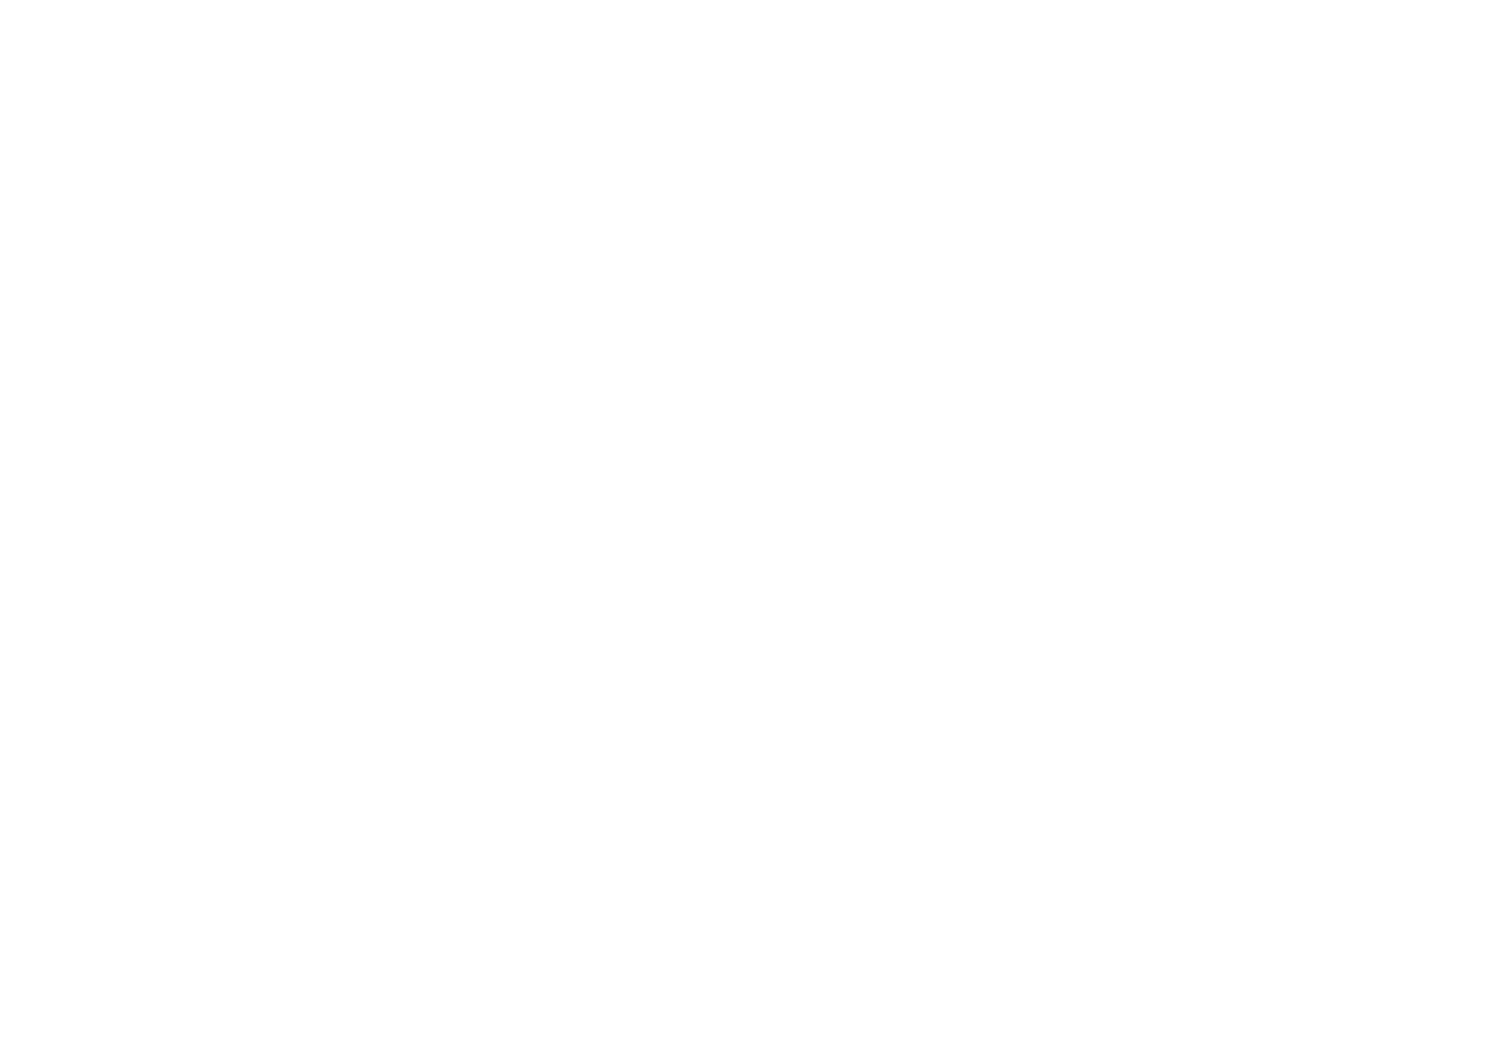 The Dinner Party Project